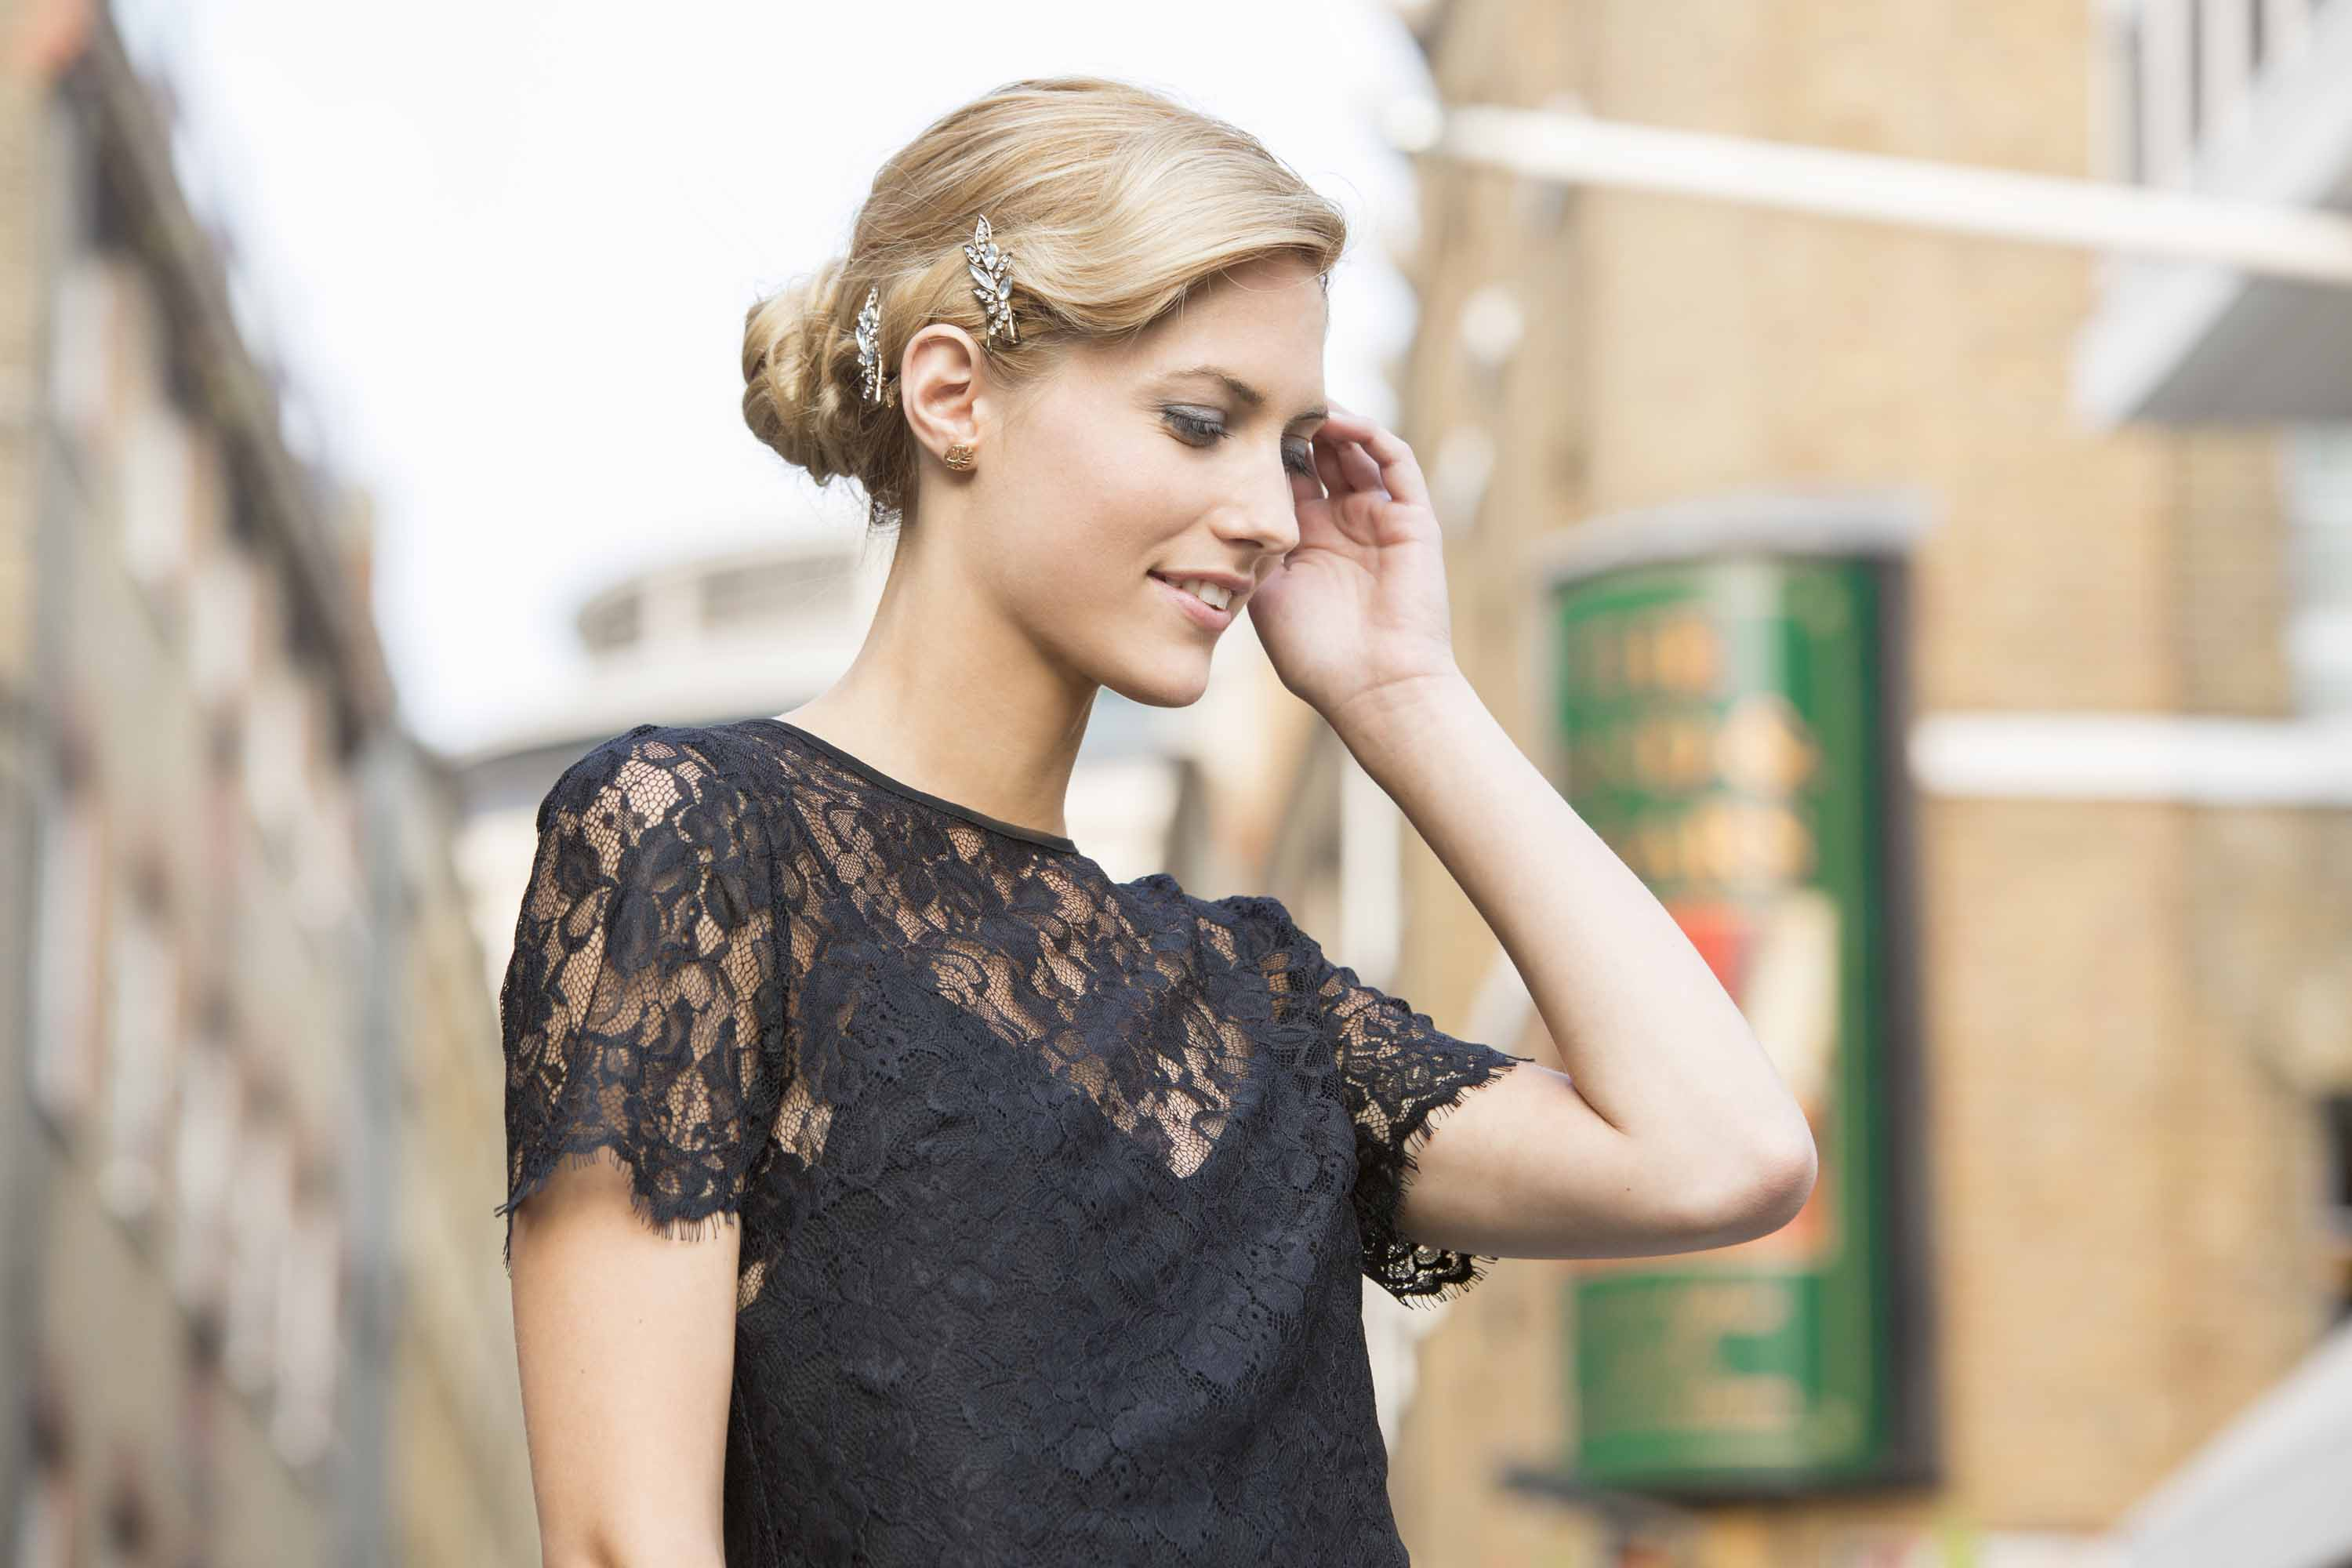 close up shot of woman with blonde hair vintage updo, wearing black lace top and posing outside